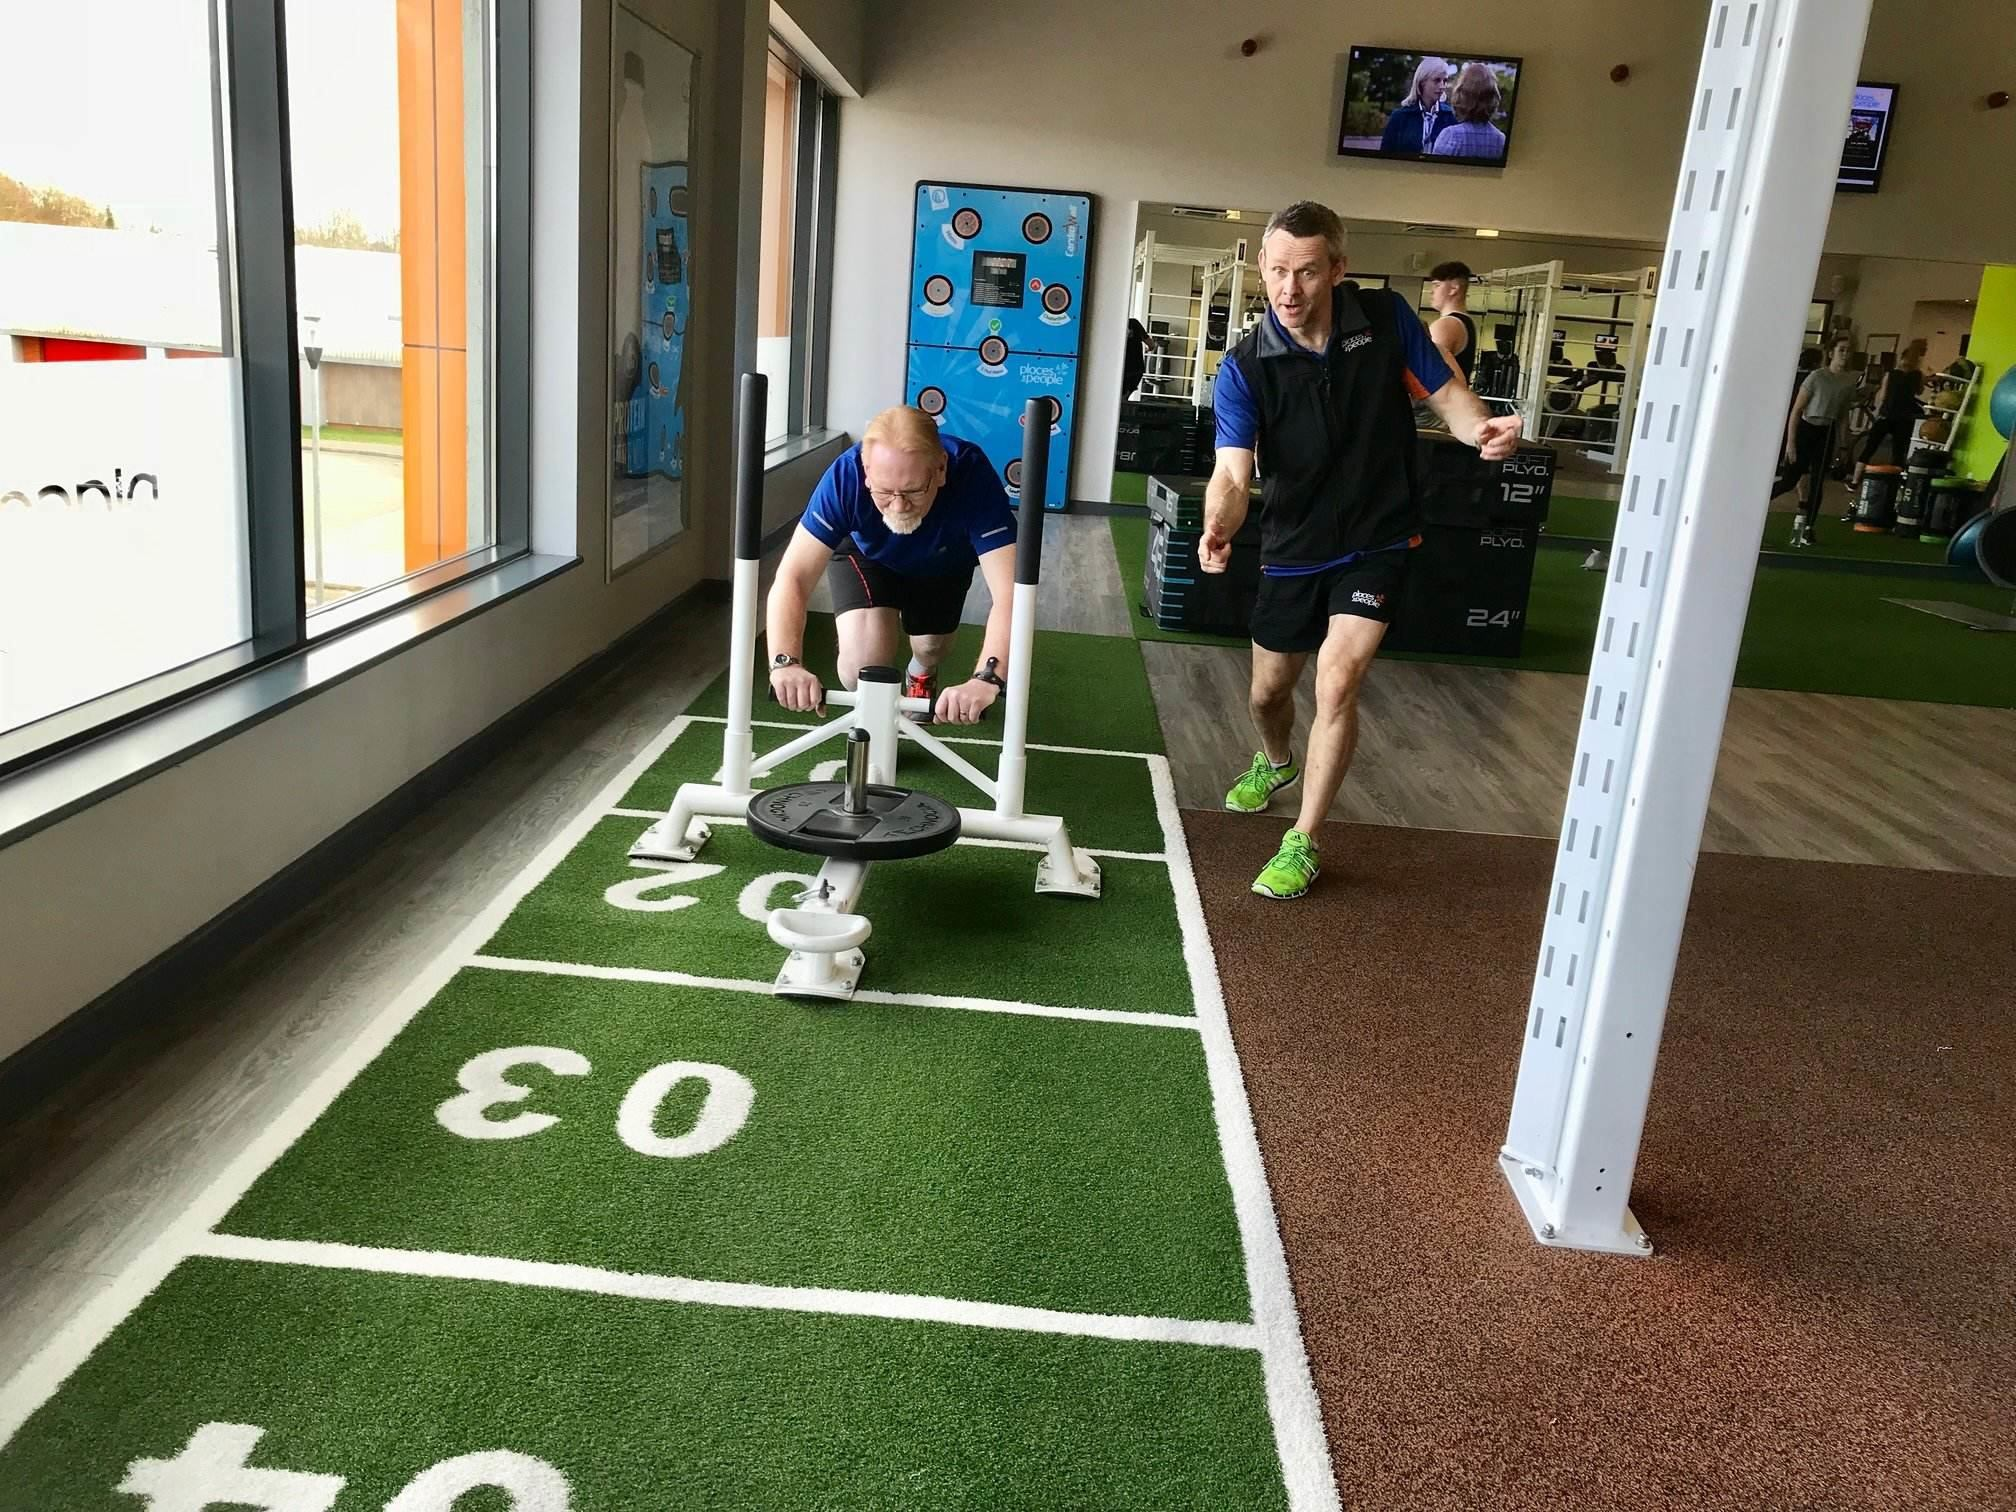 paul pushing sled in gym with steve